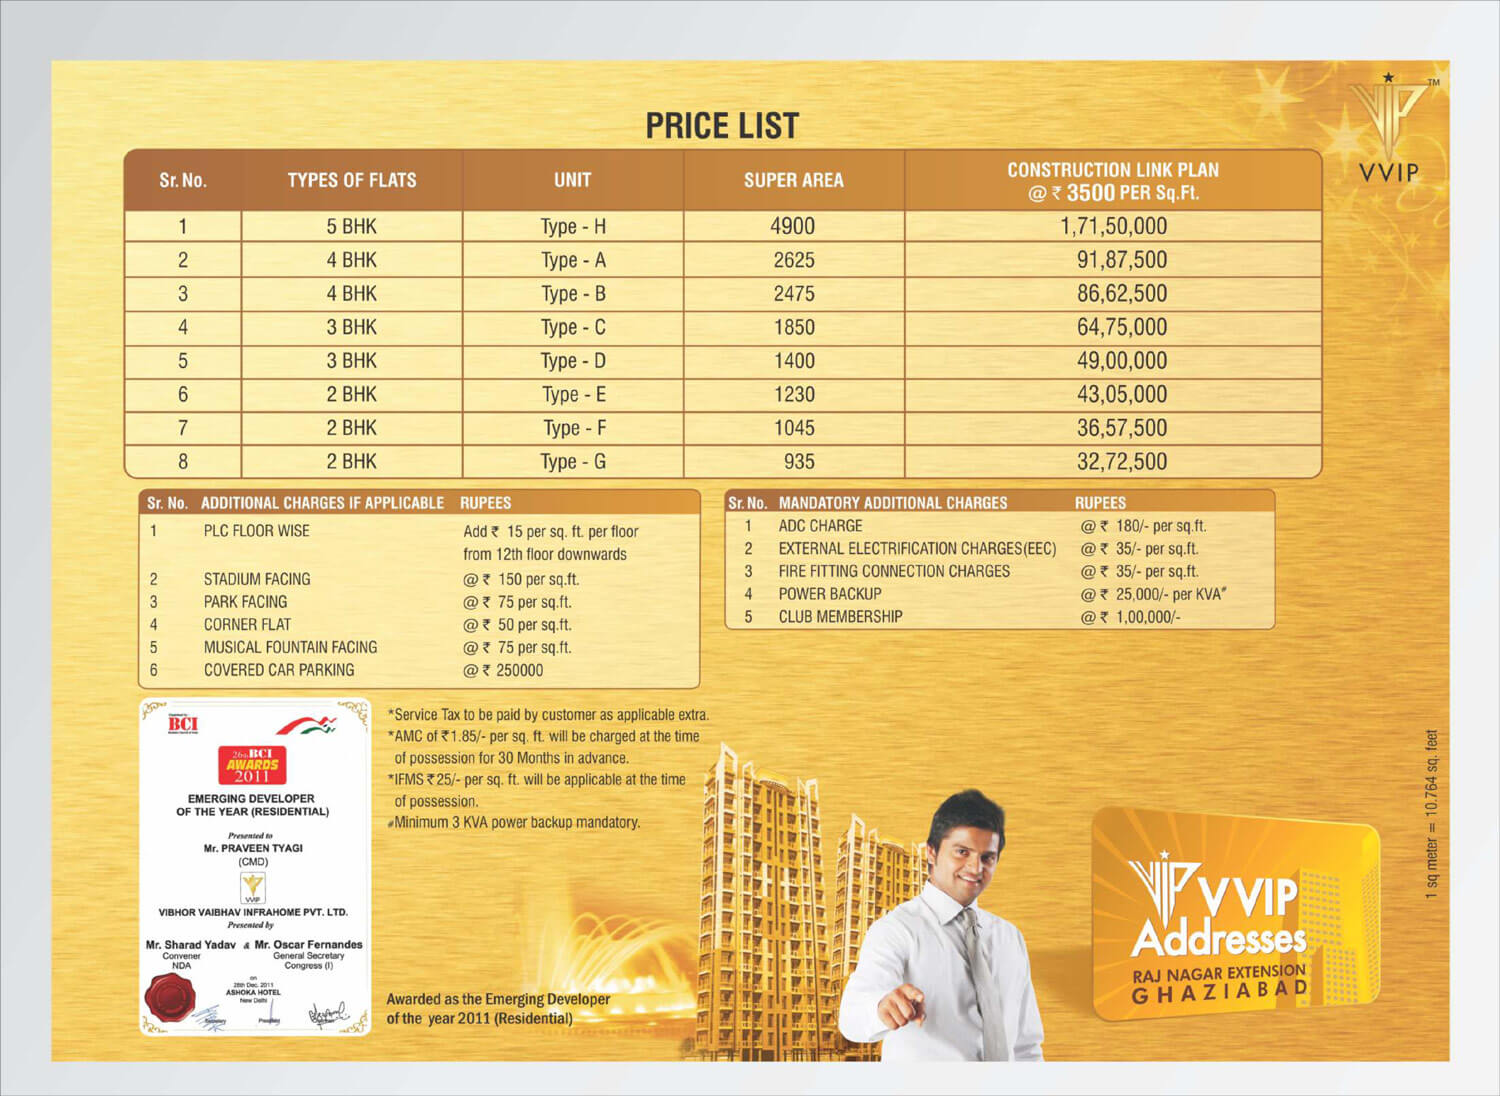 Affordable Flats in Ghaziabad – Price List